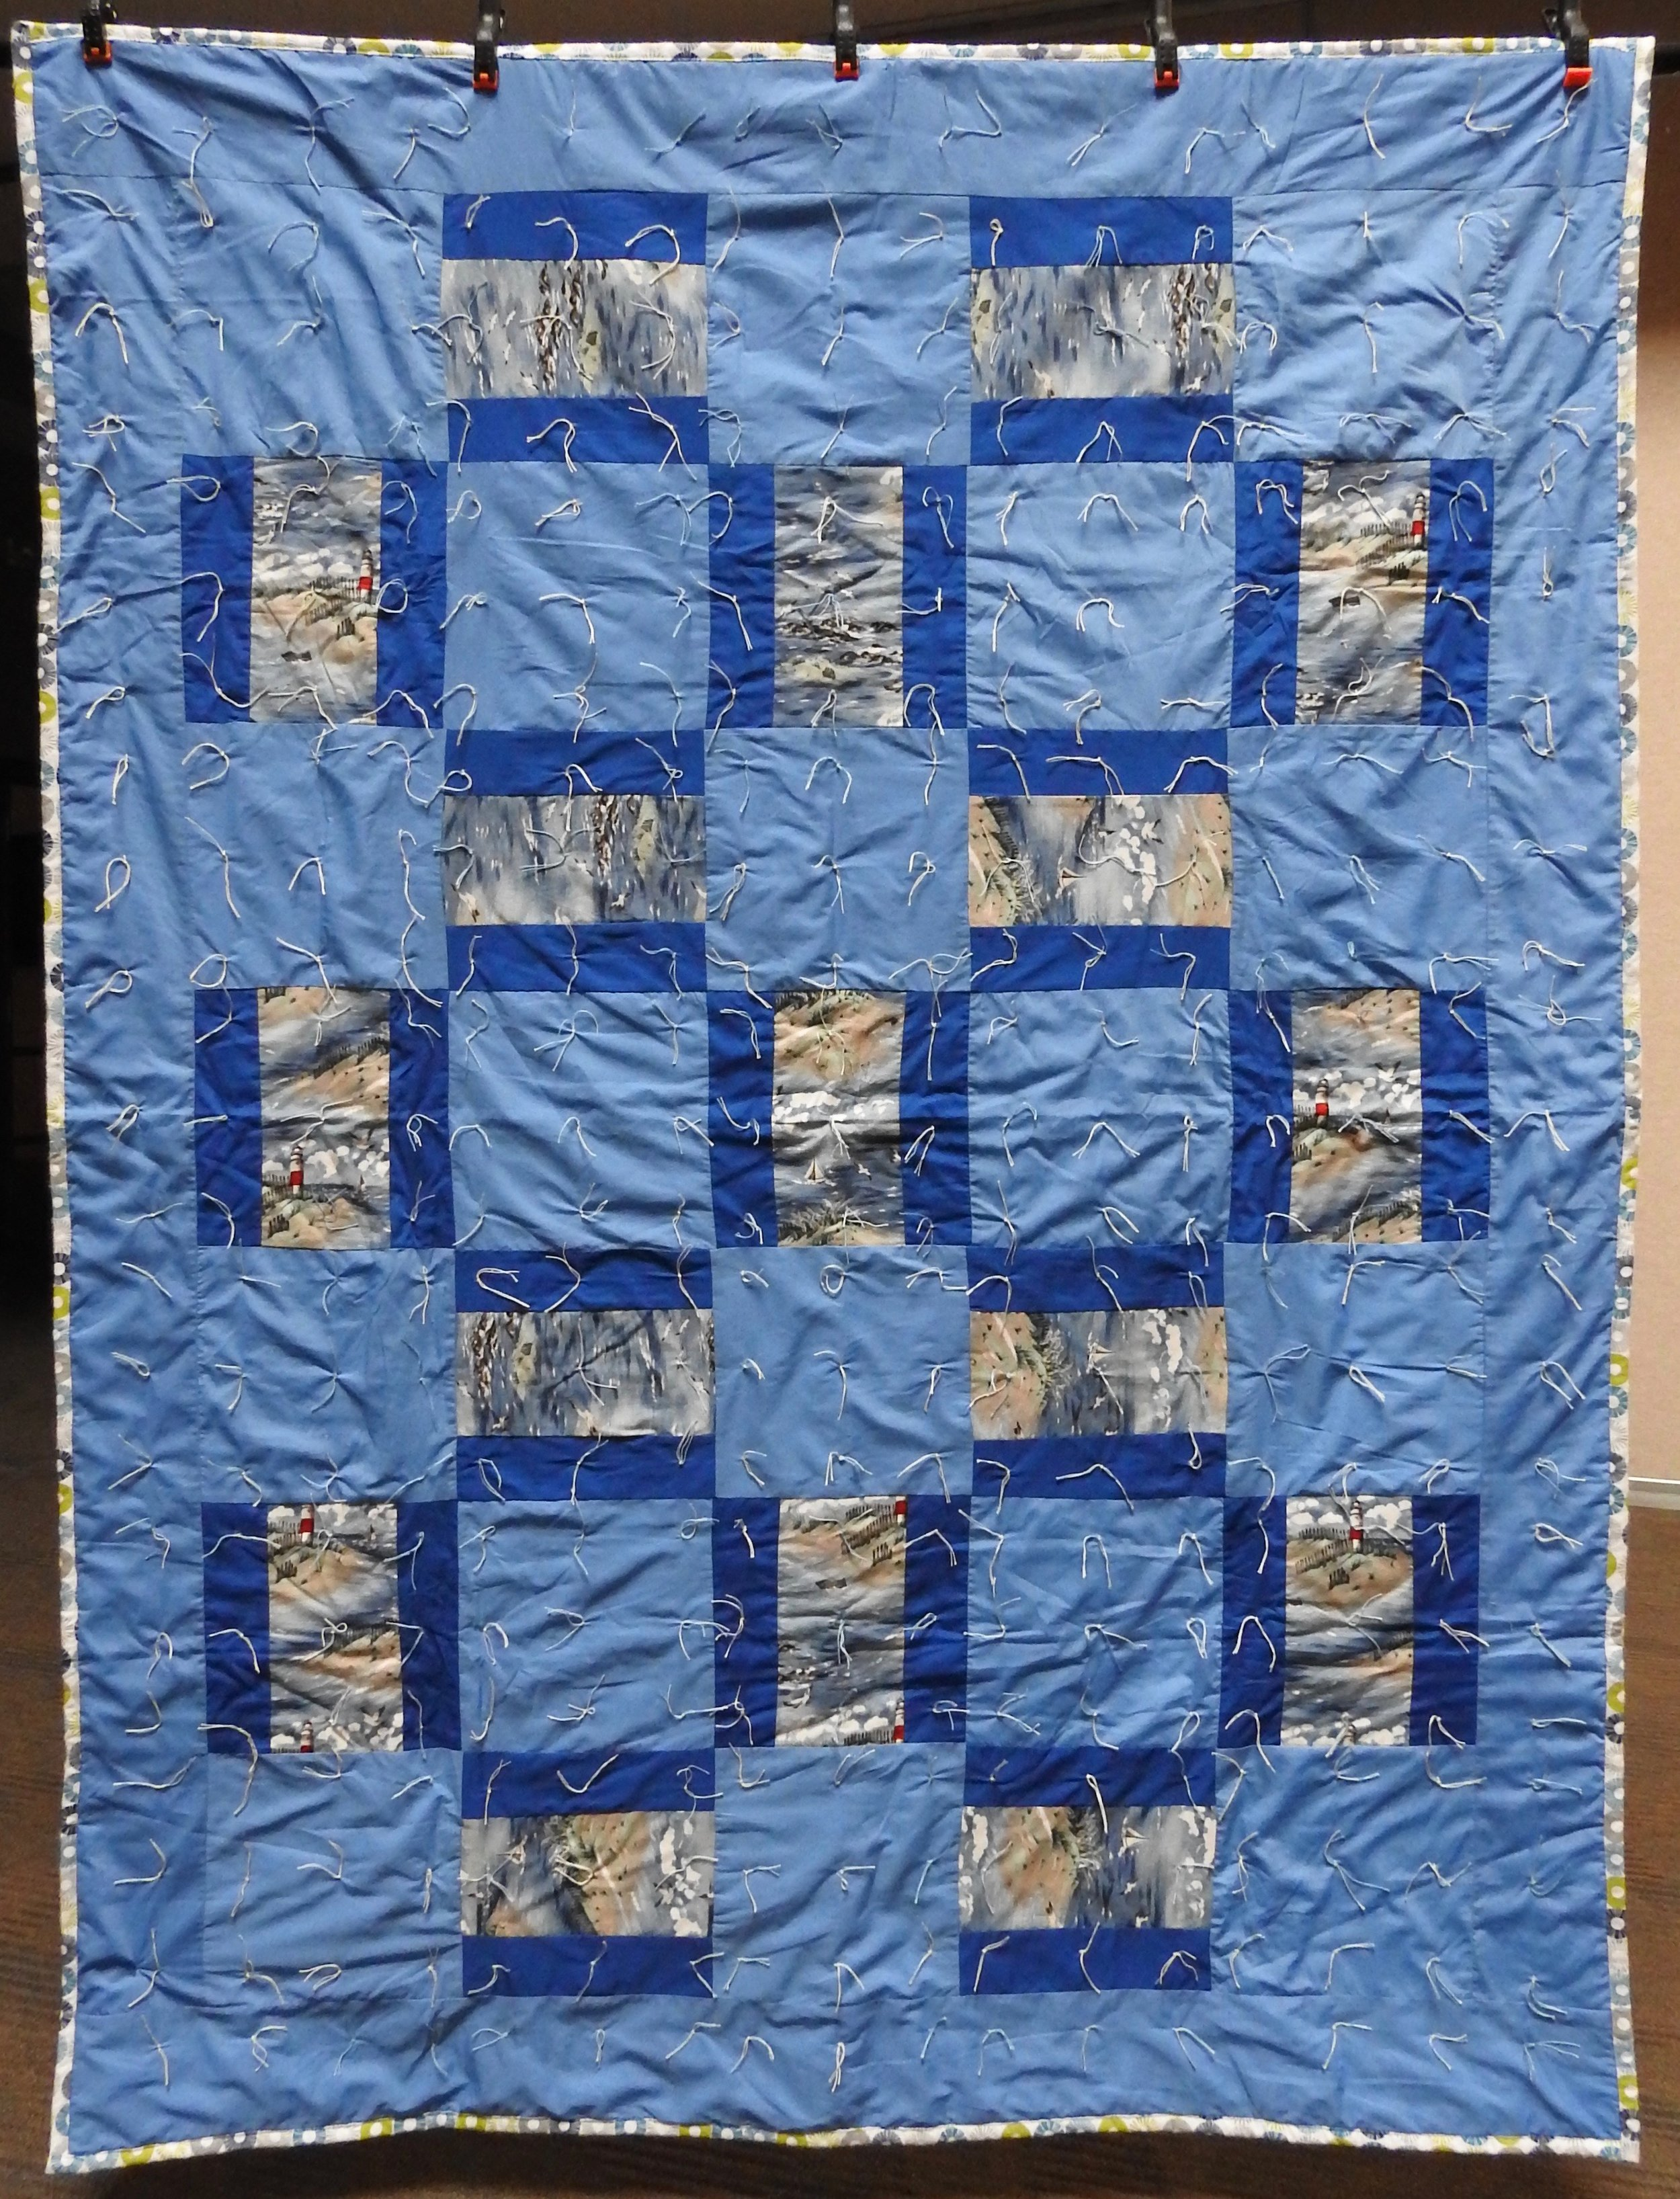 By the Sea Comforter, Pieced & Knotted, donated by Howard-Miami Mennonite Church, 60 x 80""